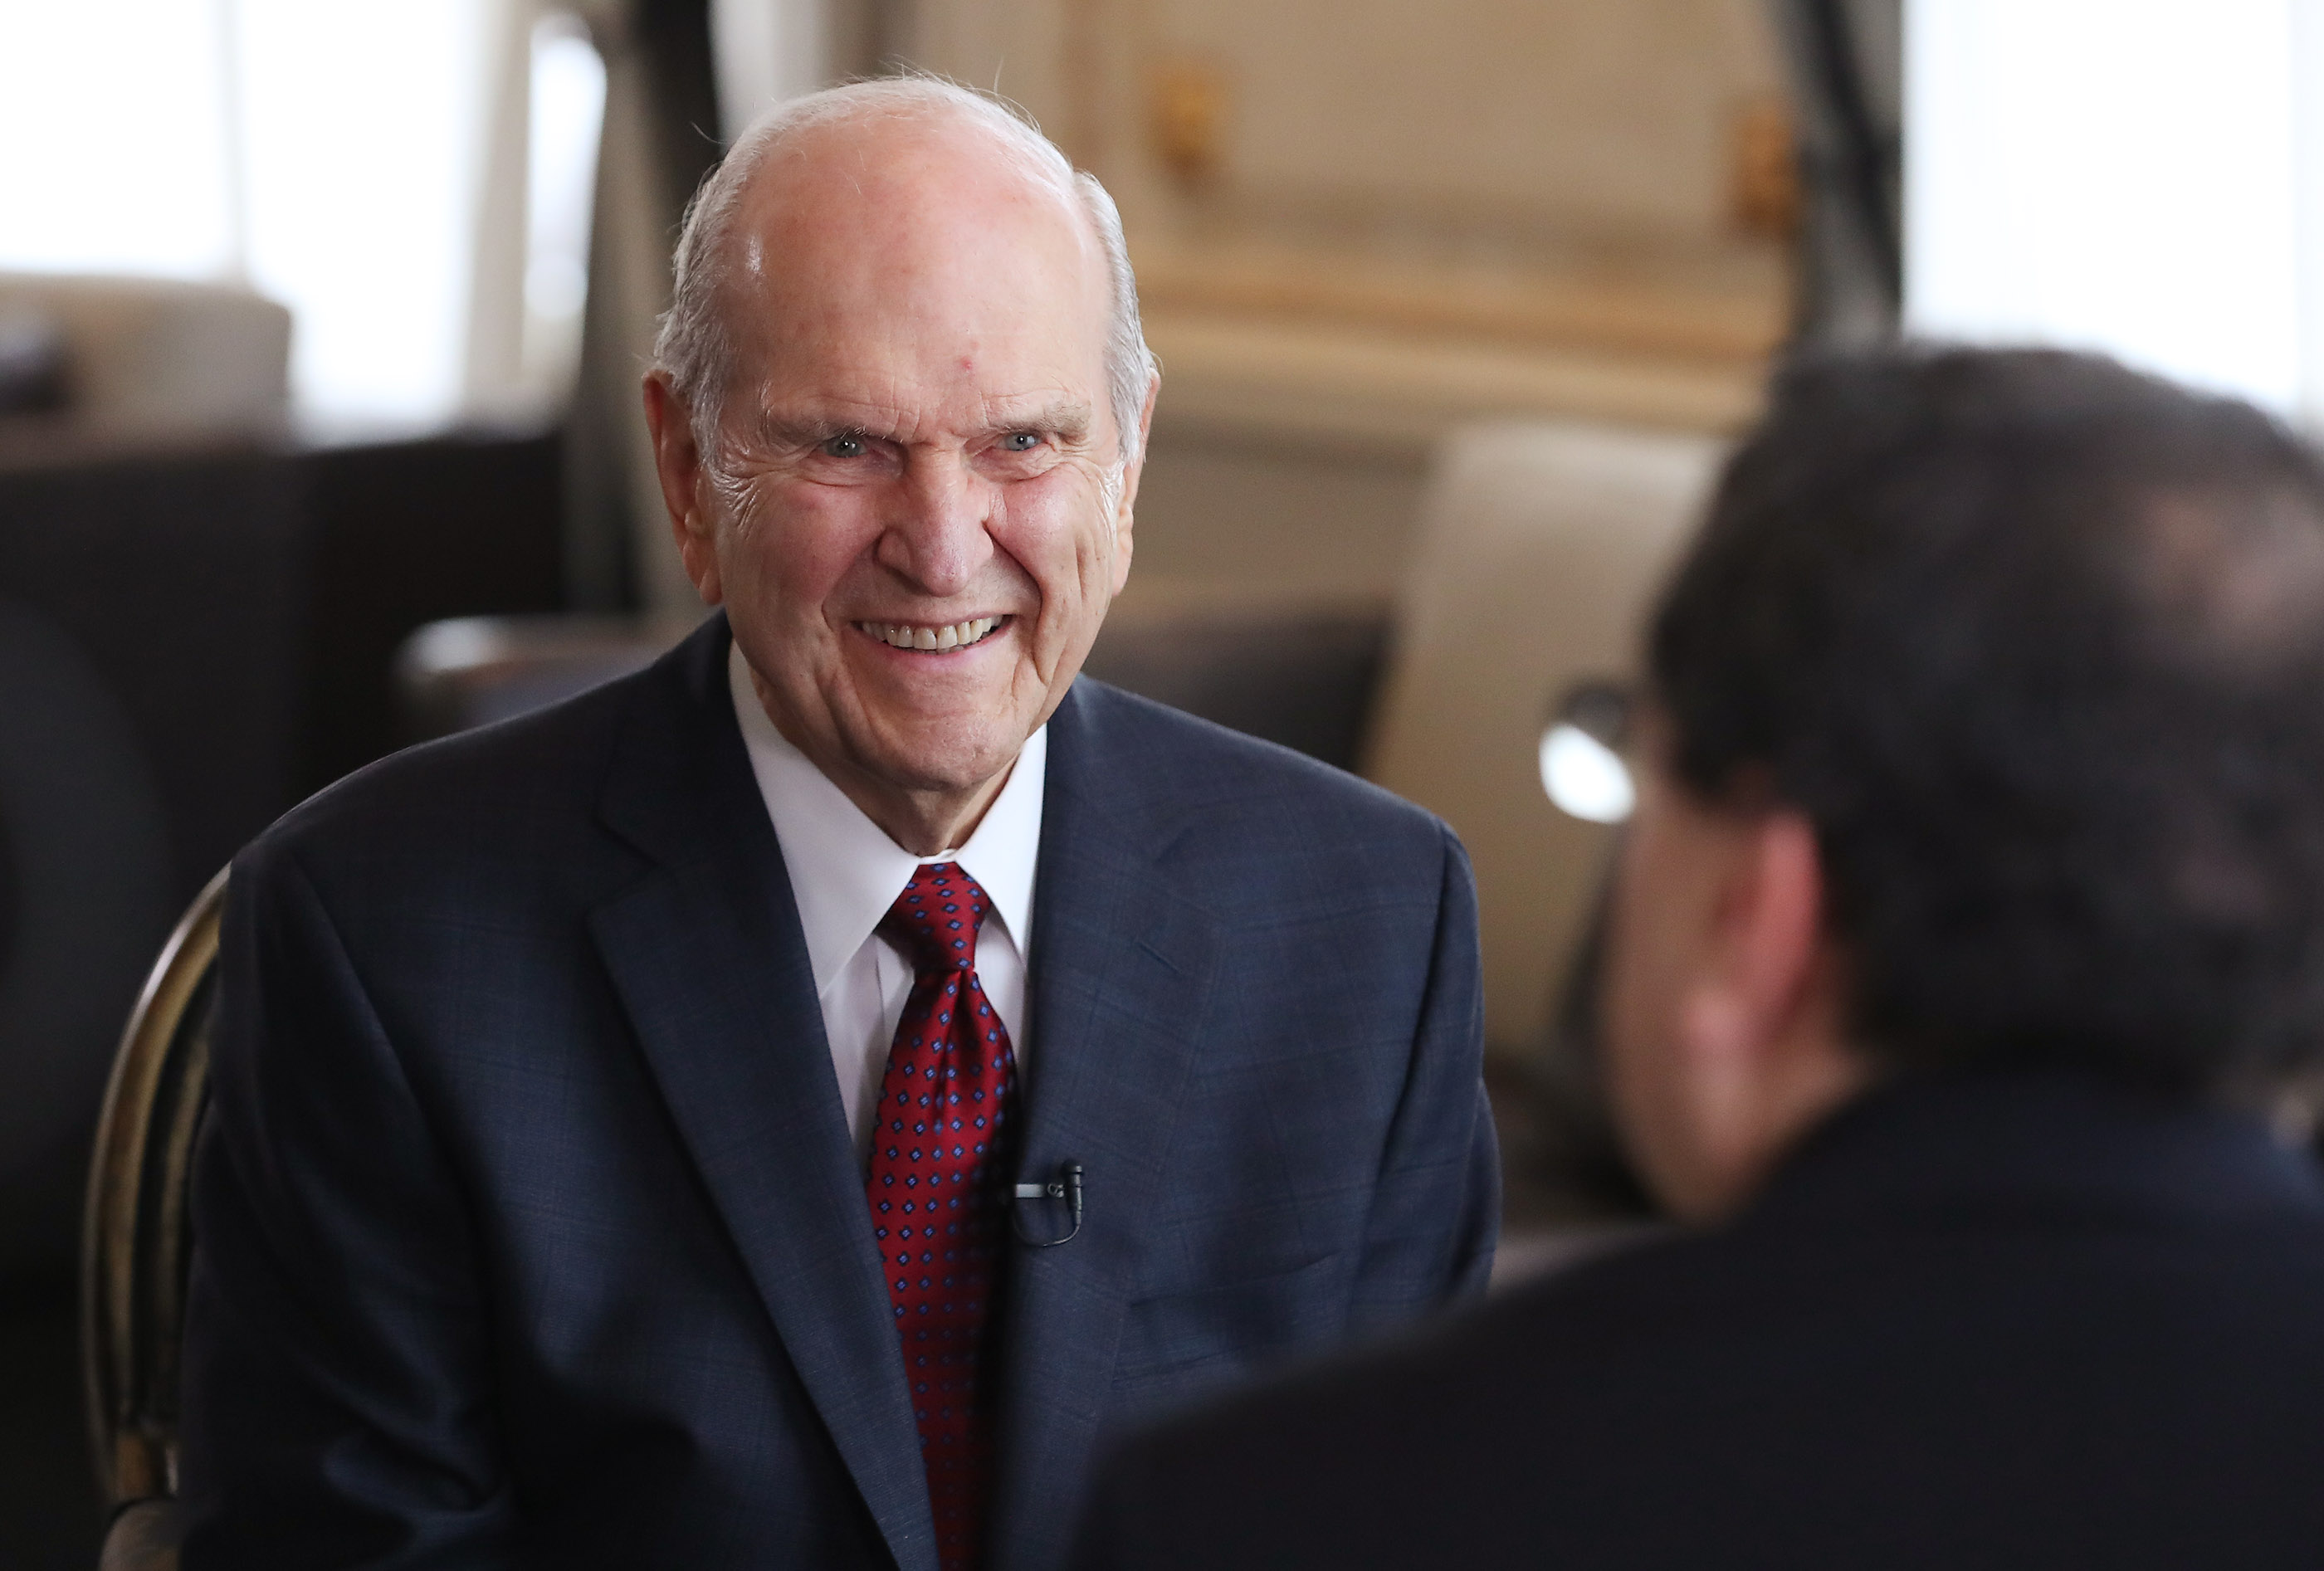 President Russell M. Nelson of The Church of Jesus Christ of Latter-day Saints is interviewed Sergio Rubin, Argentine journalist and biographer of Pope Francis, in Montevideo, Uruguay on Oct. 26, 2018.